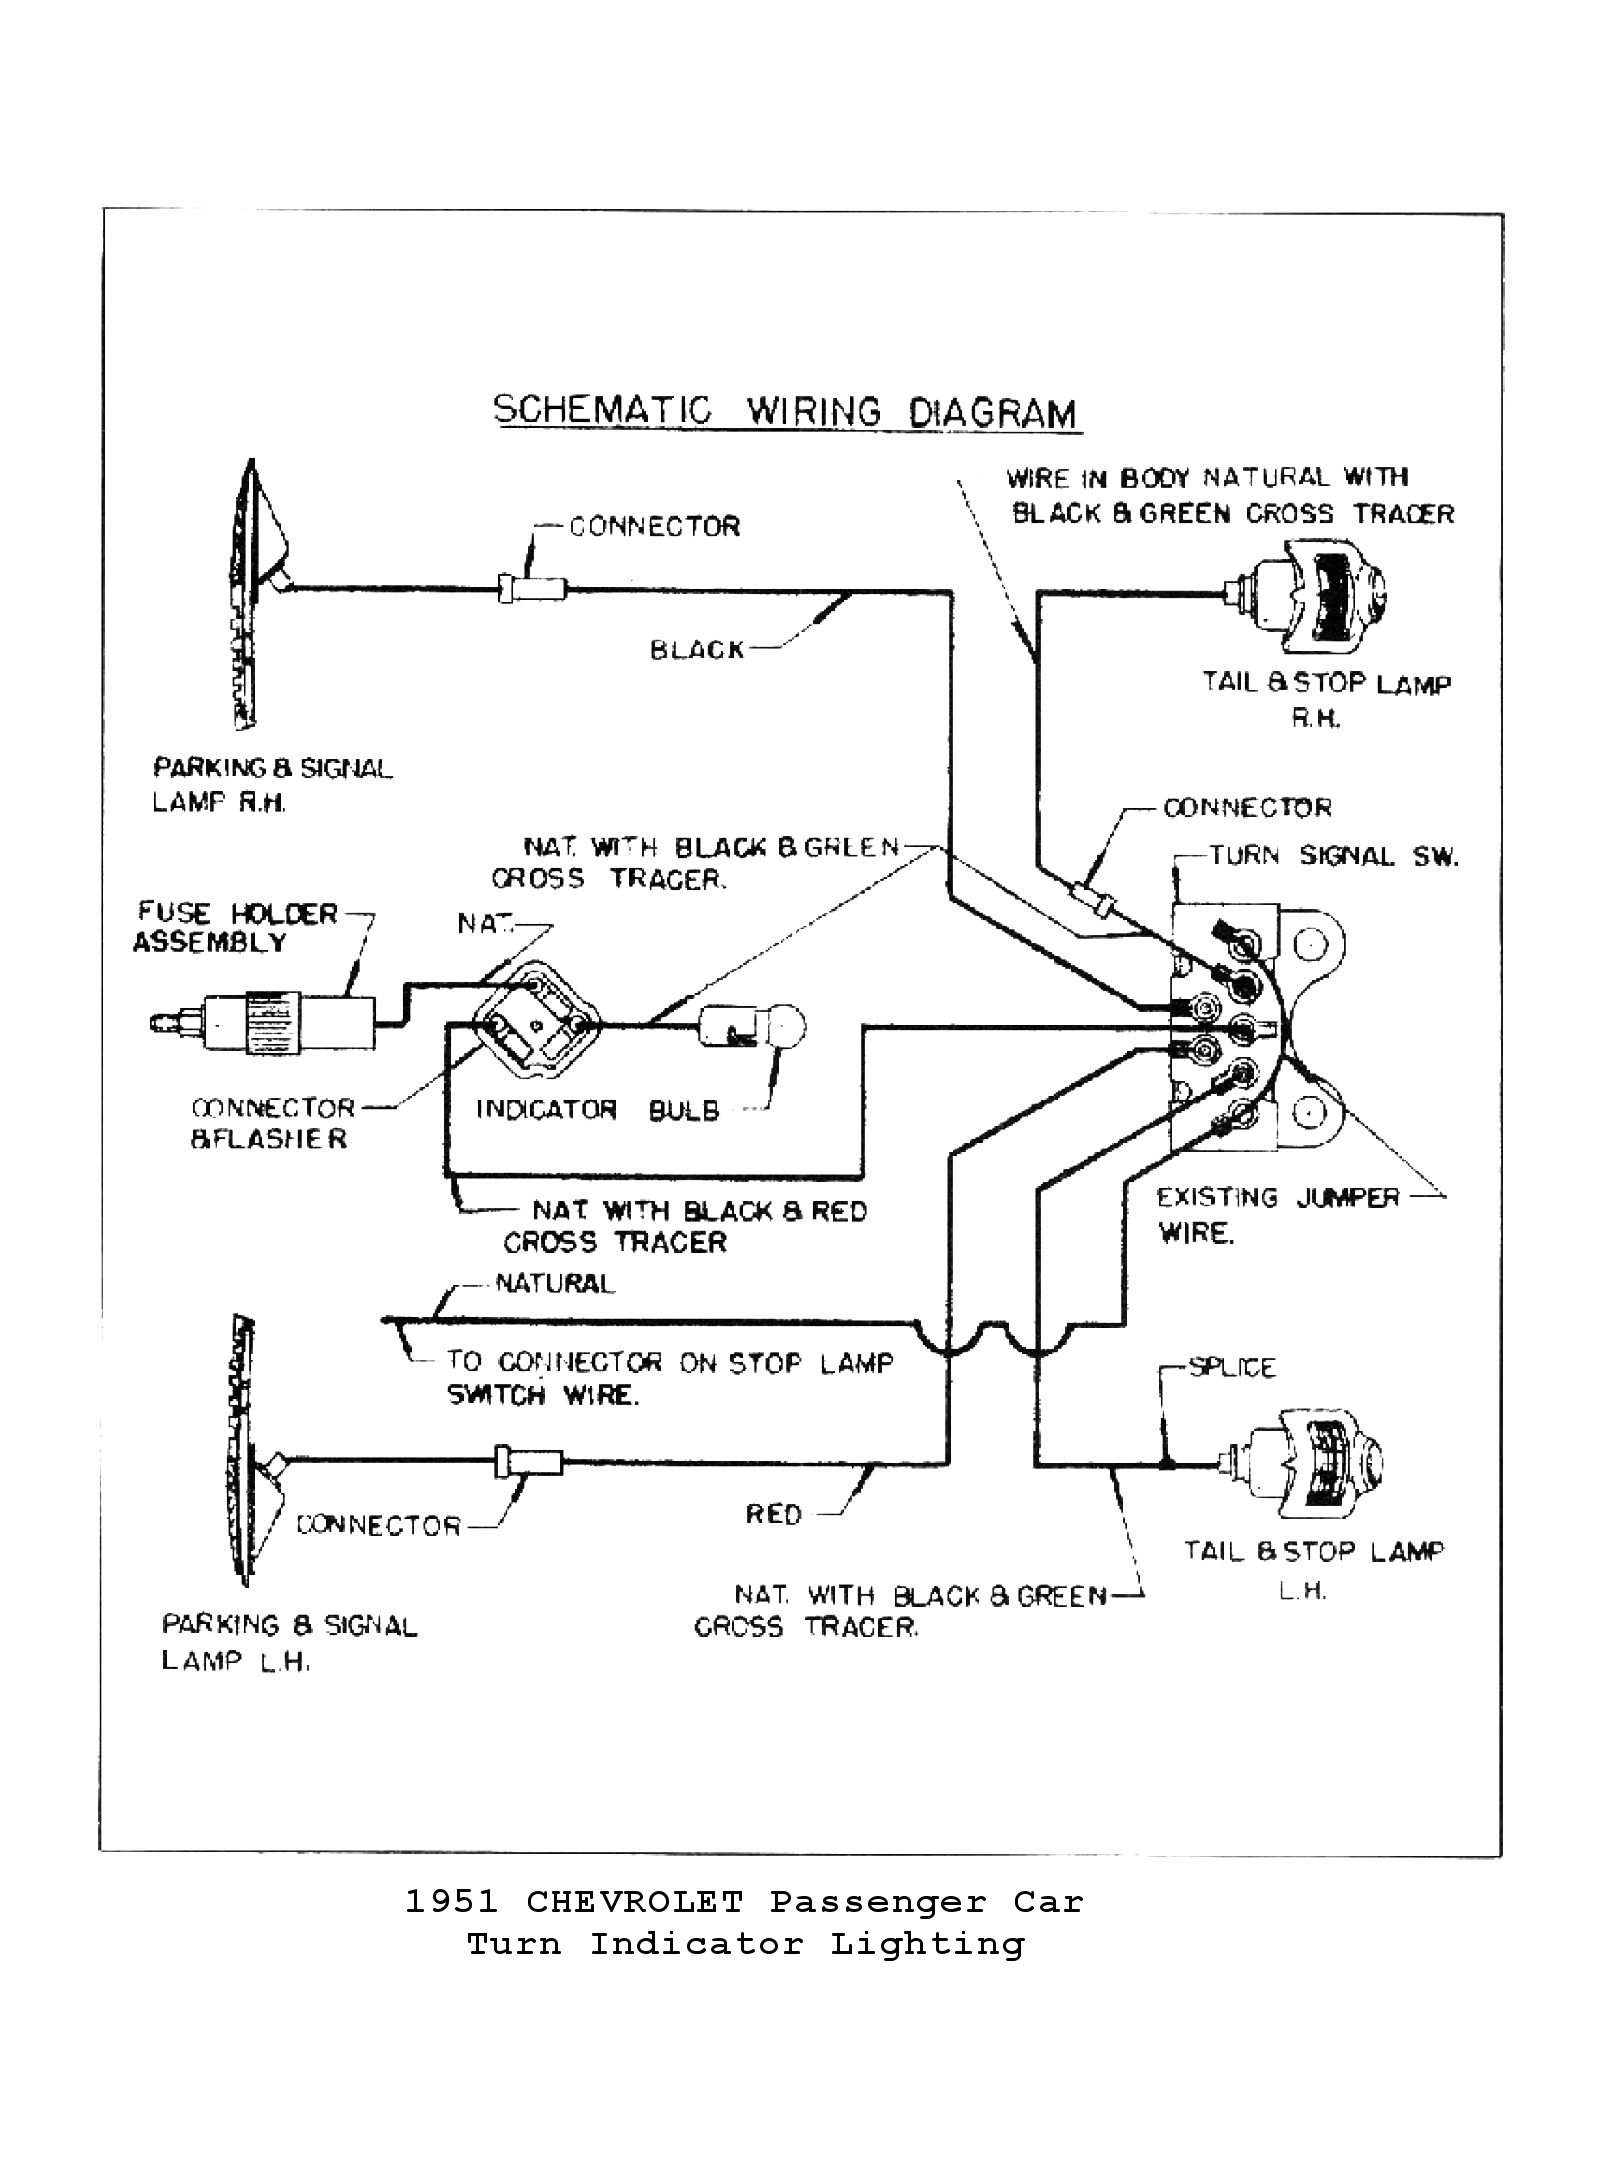 1954 Chevy Ignition Diagram Wiring Schematic Auto Electrical Color Wire Diagrams